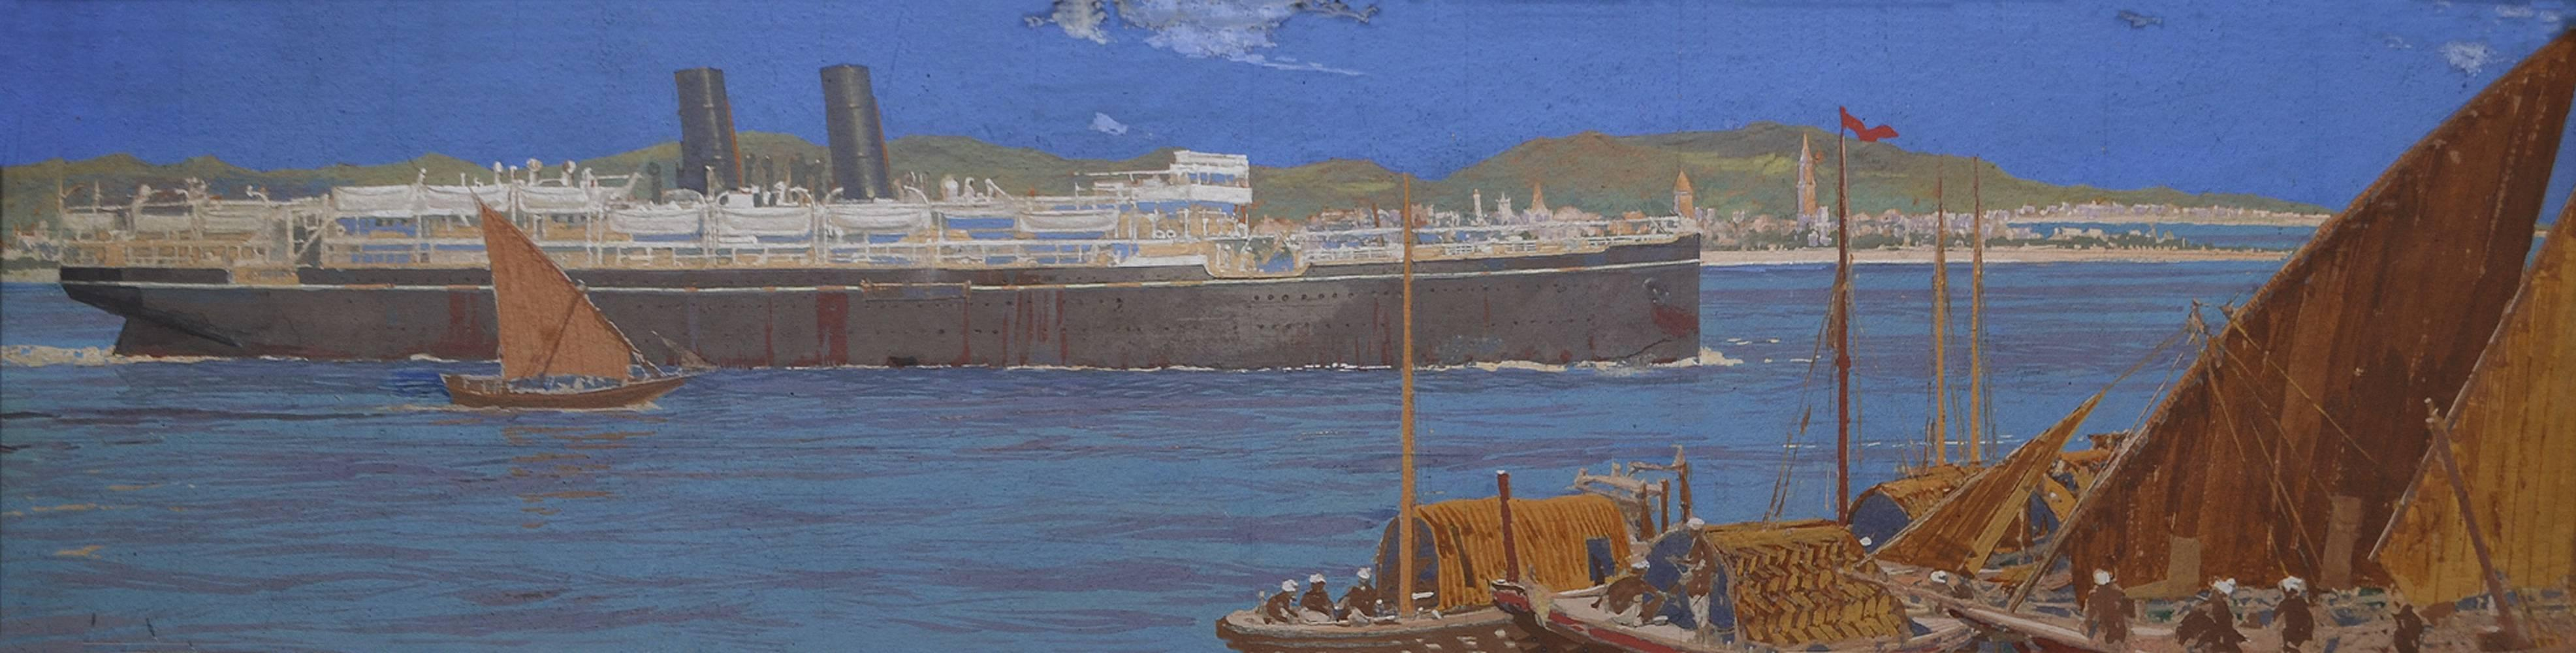 Steamship in Asia